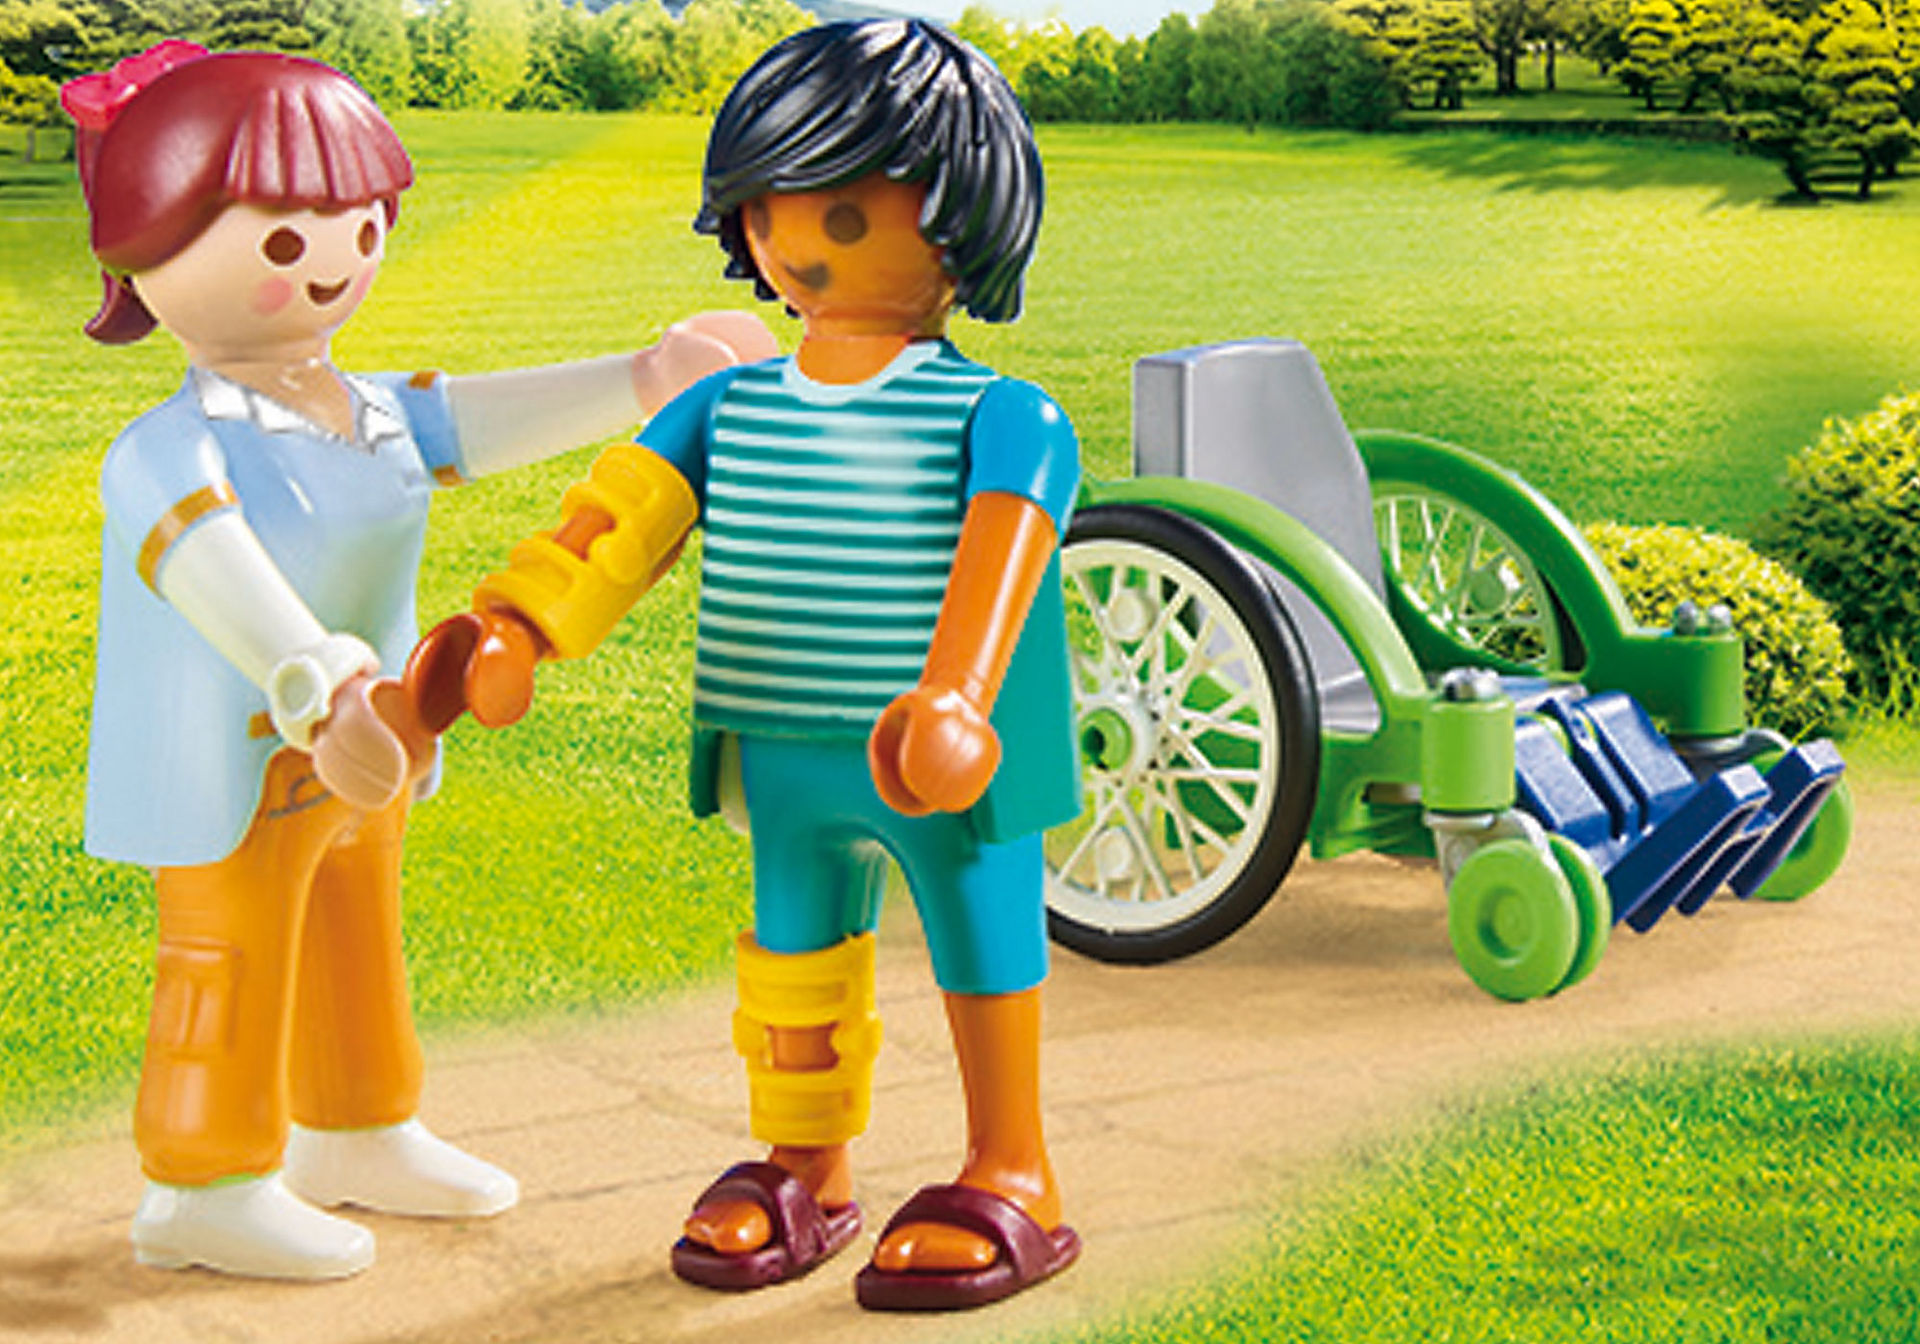 http://media.playmobil.com/i/playmobil/70193_product_extra1/Paziente con sedia a rotelle